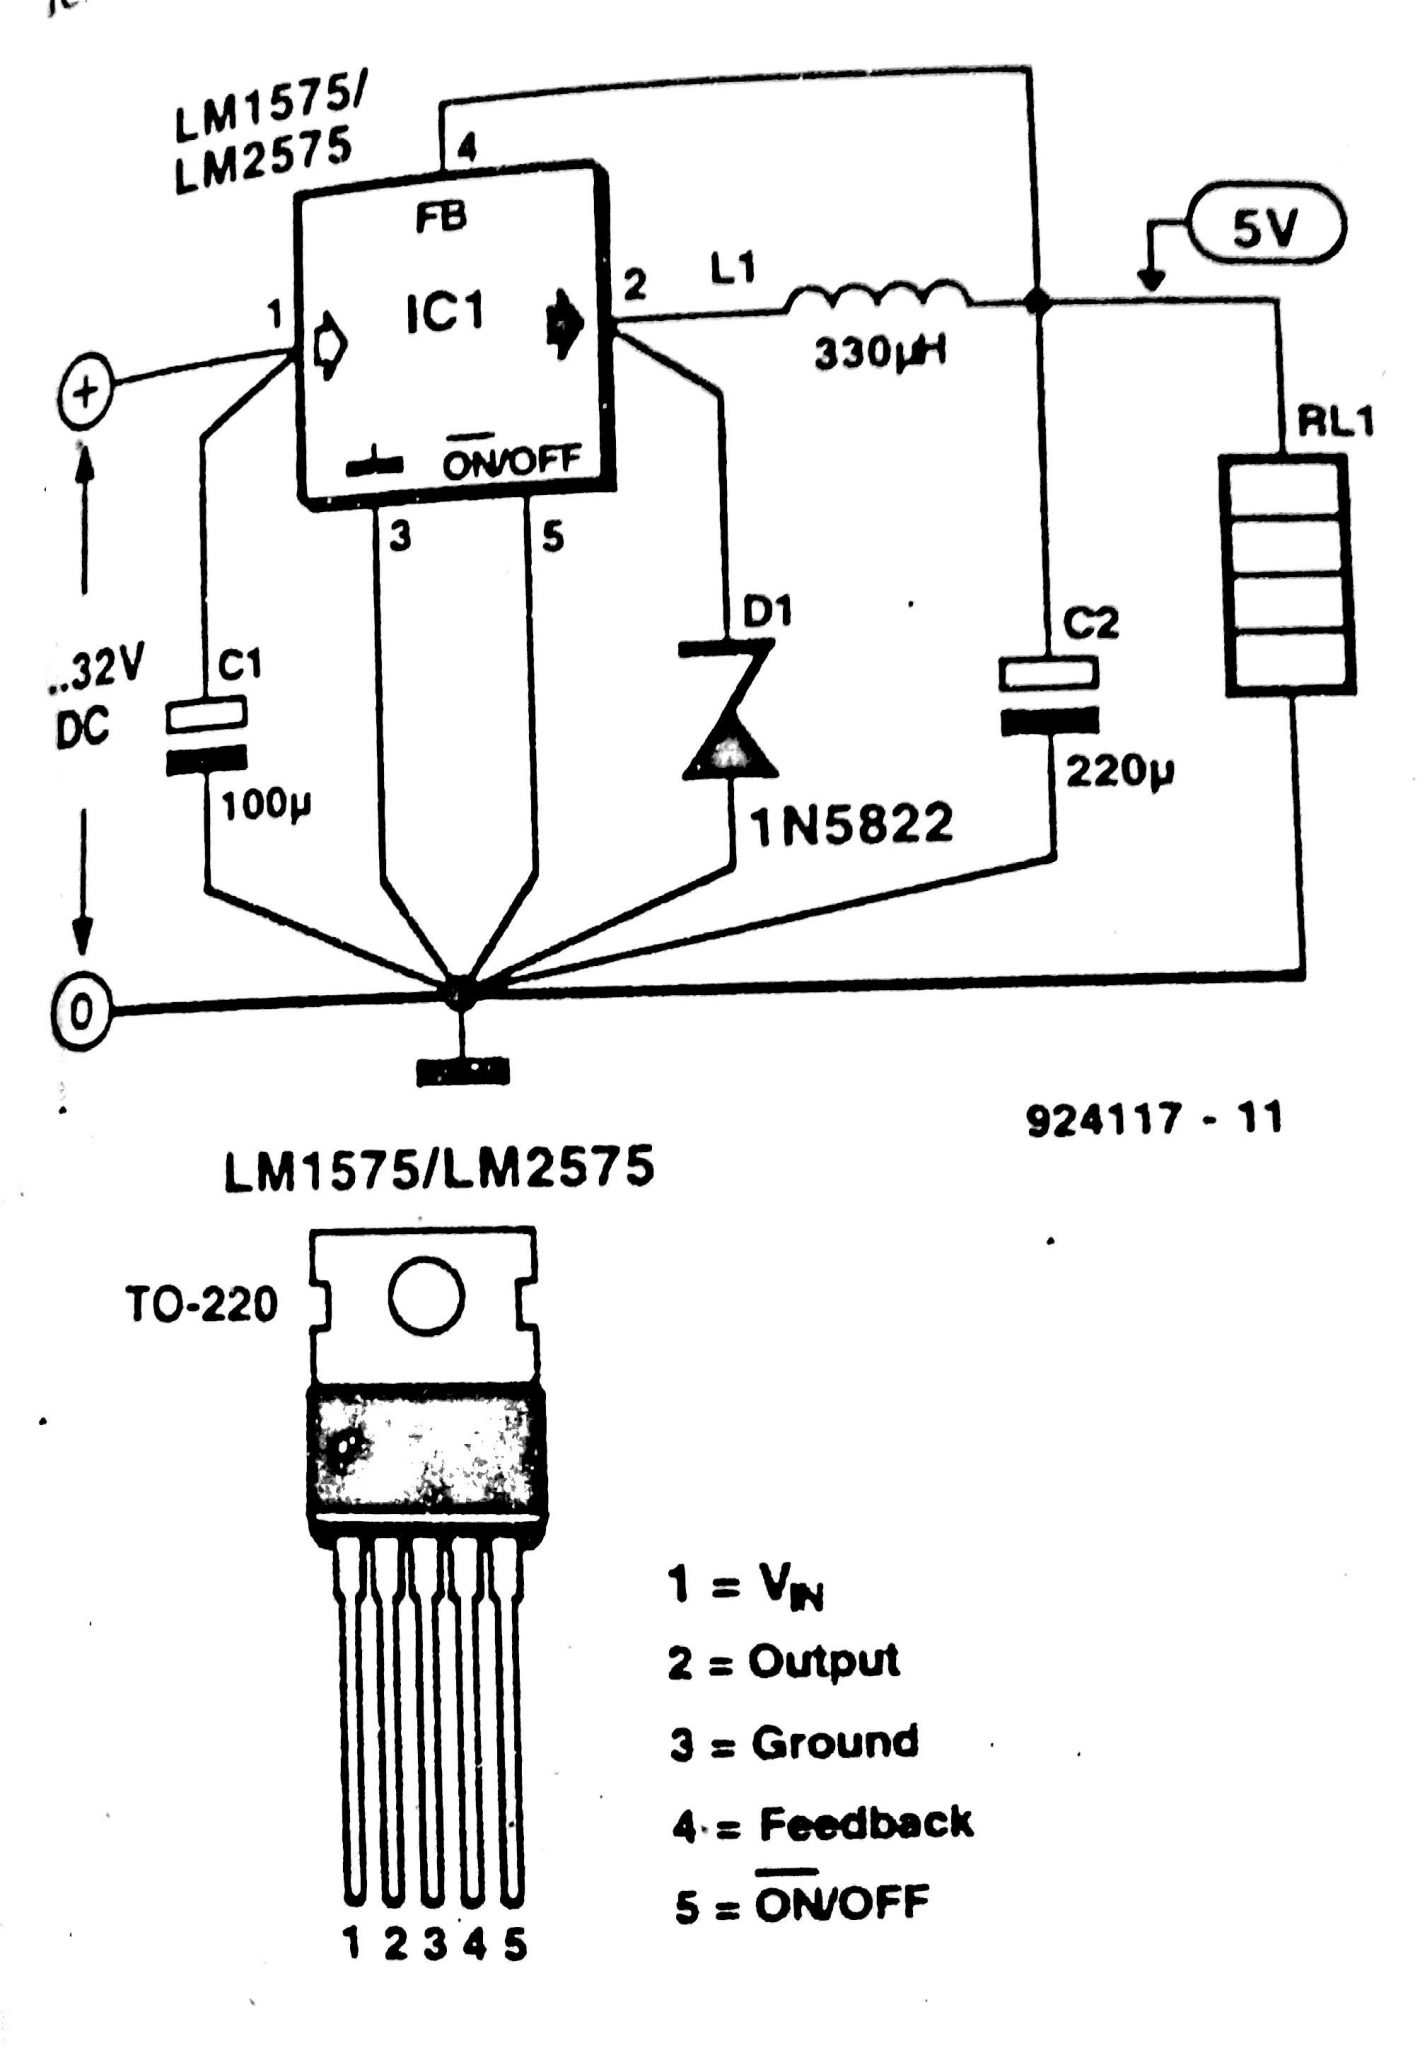 Switched Power Supply using LM2575 or LM1575